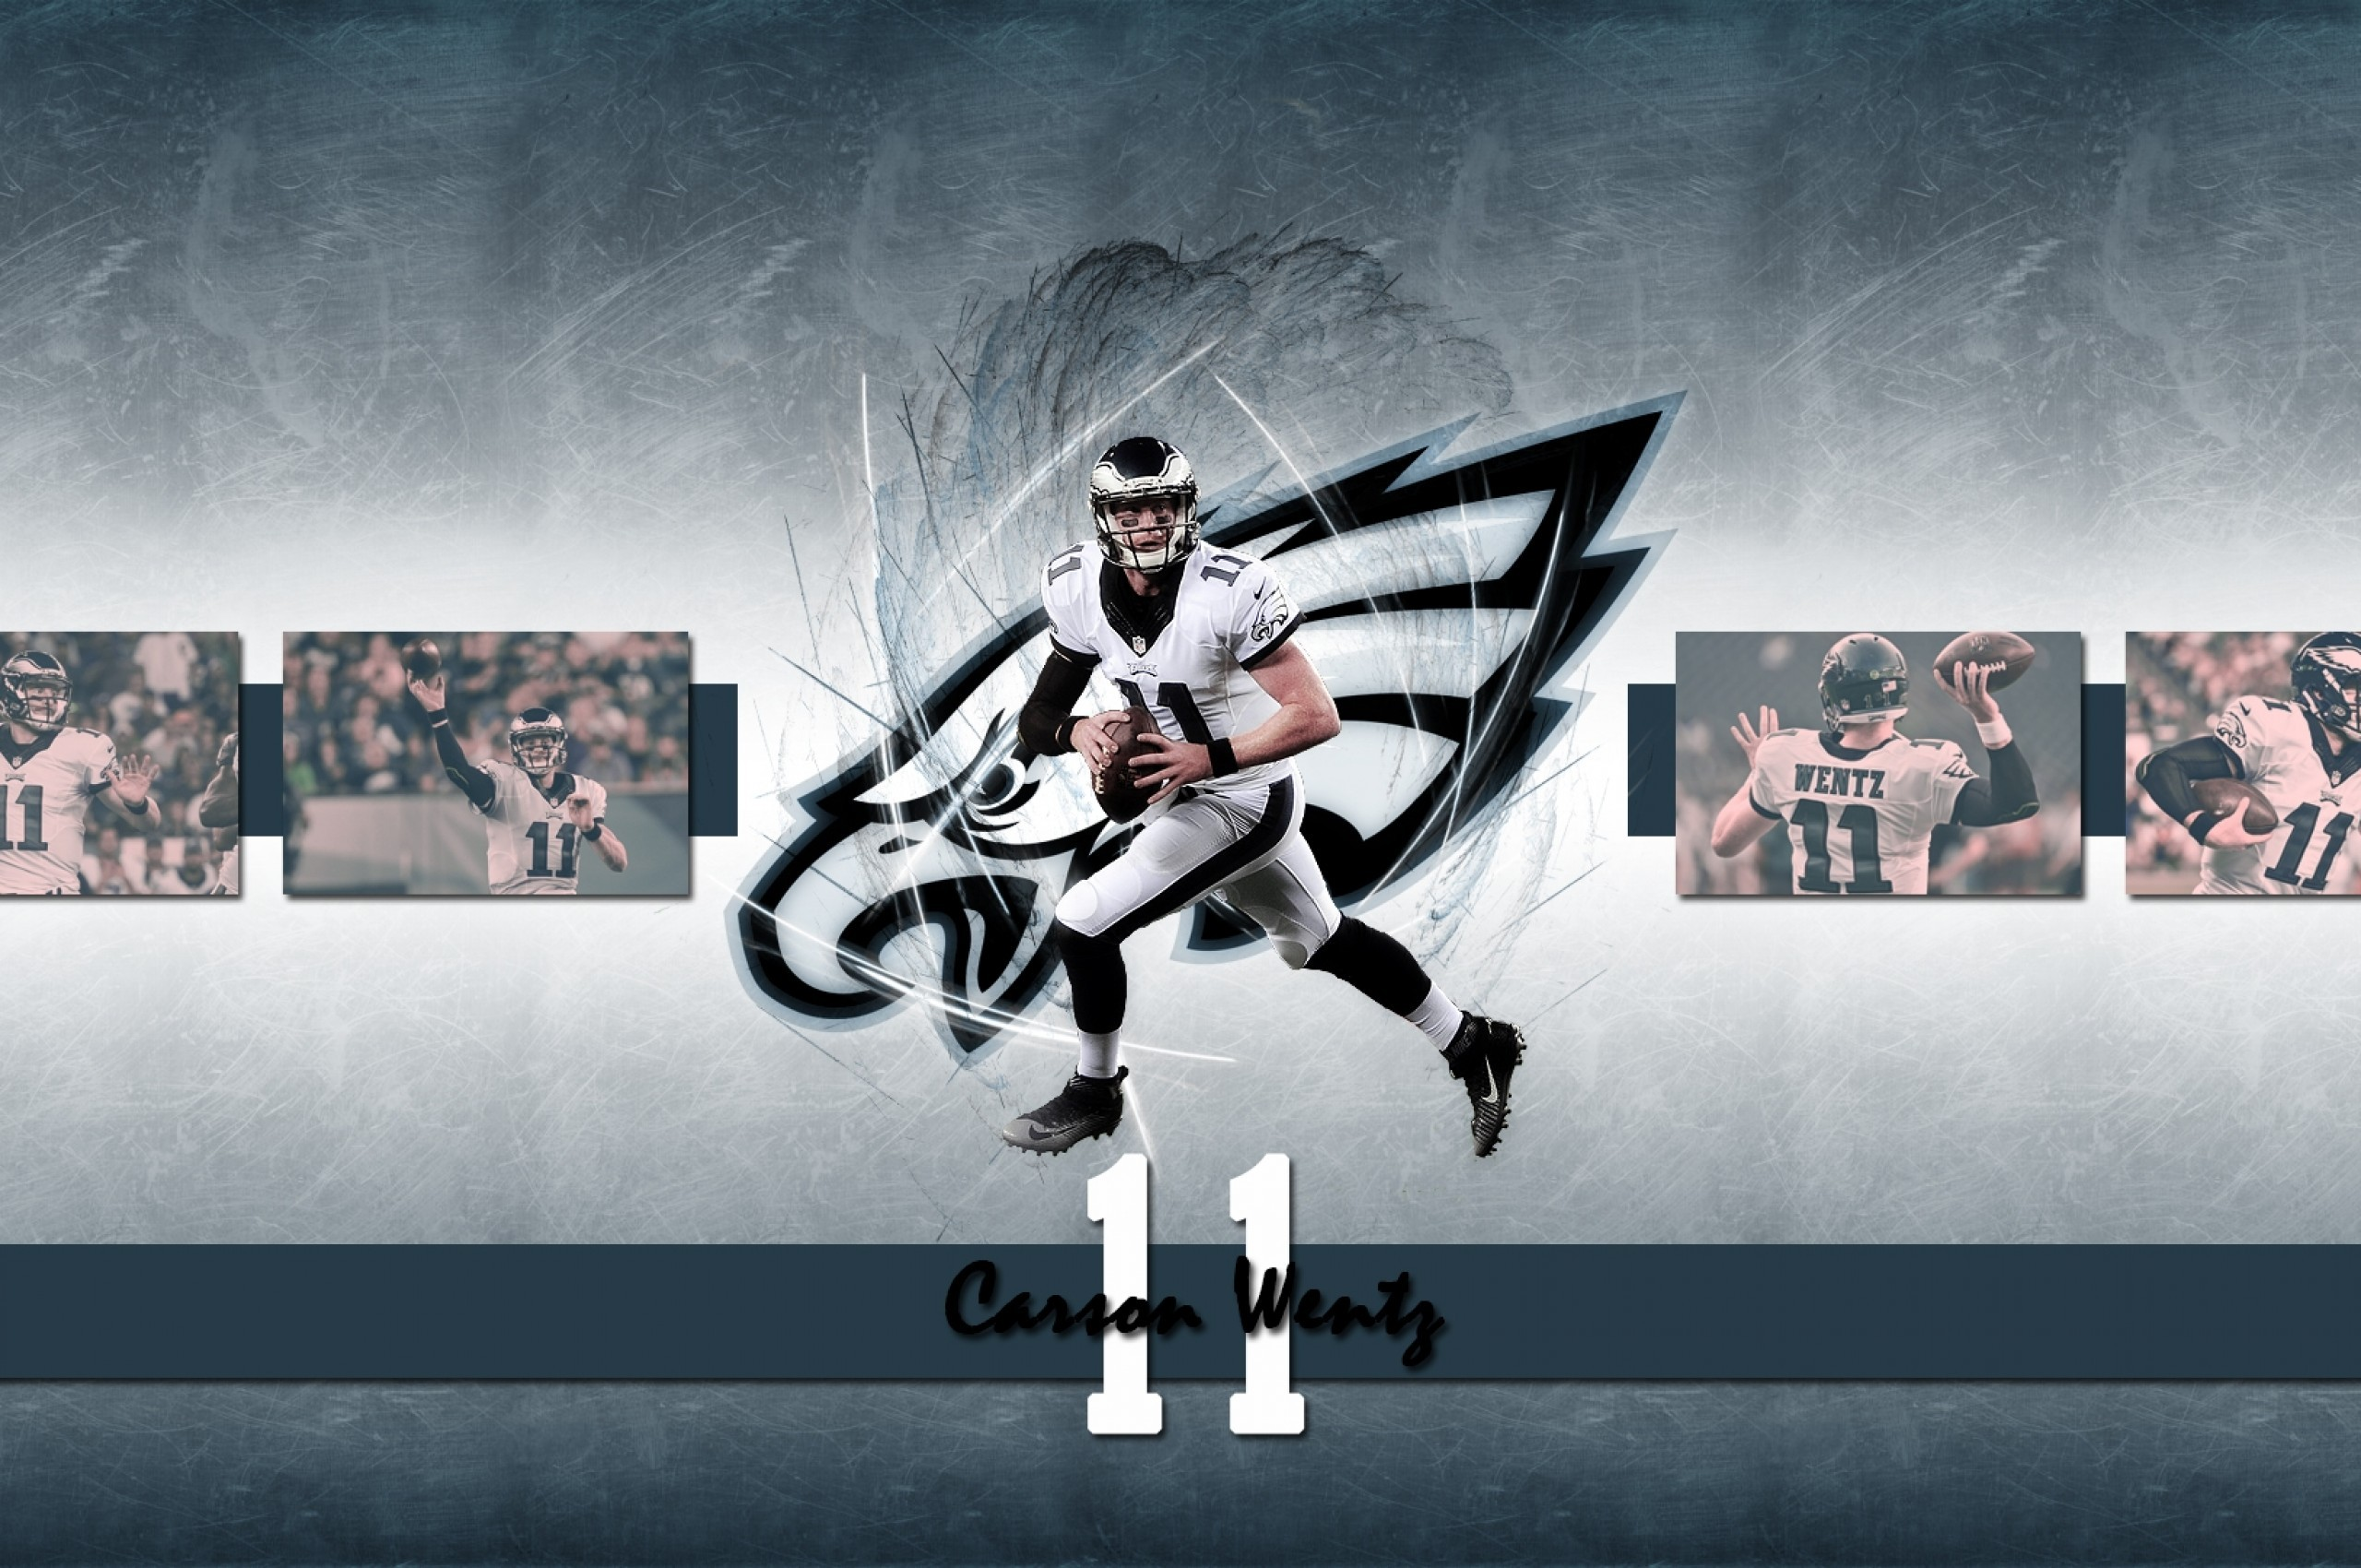 Download 2560x1700 Carson Wentz American Football Wallpapers for 2560x1700